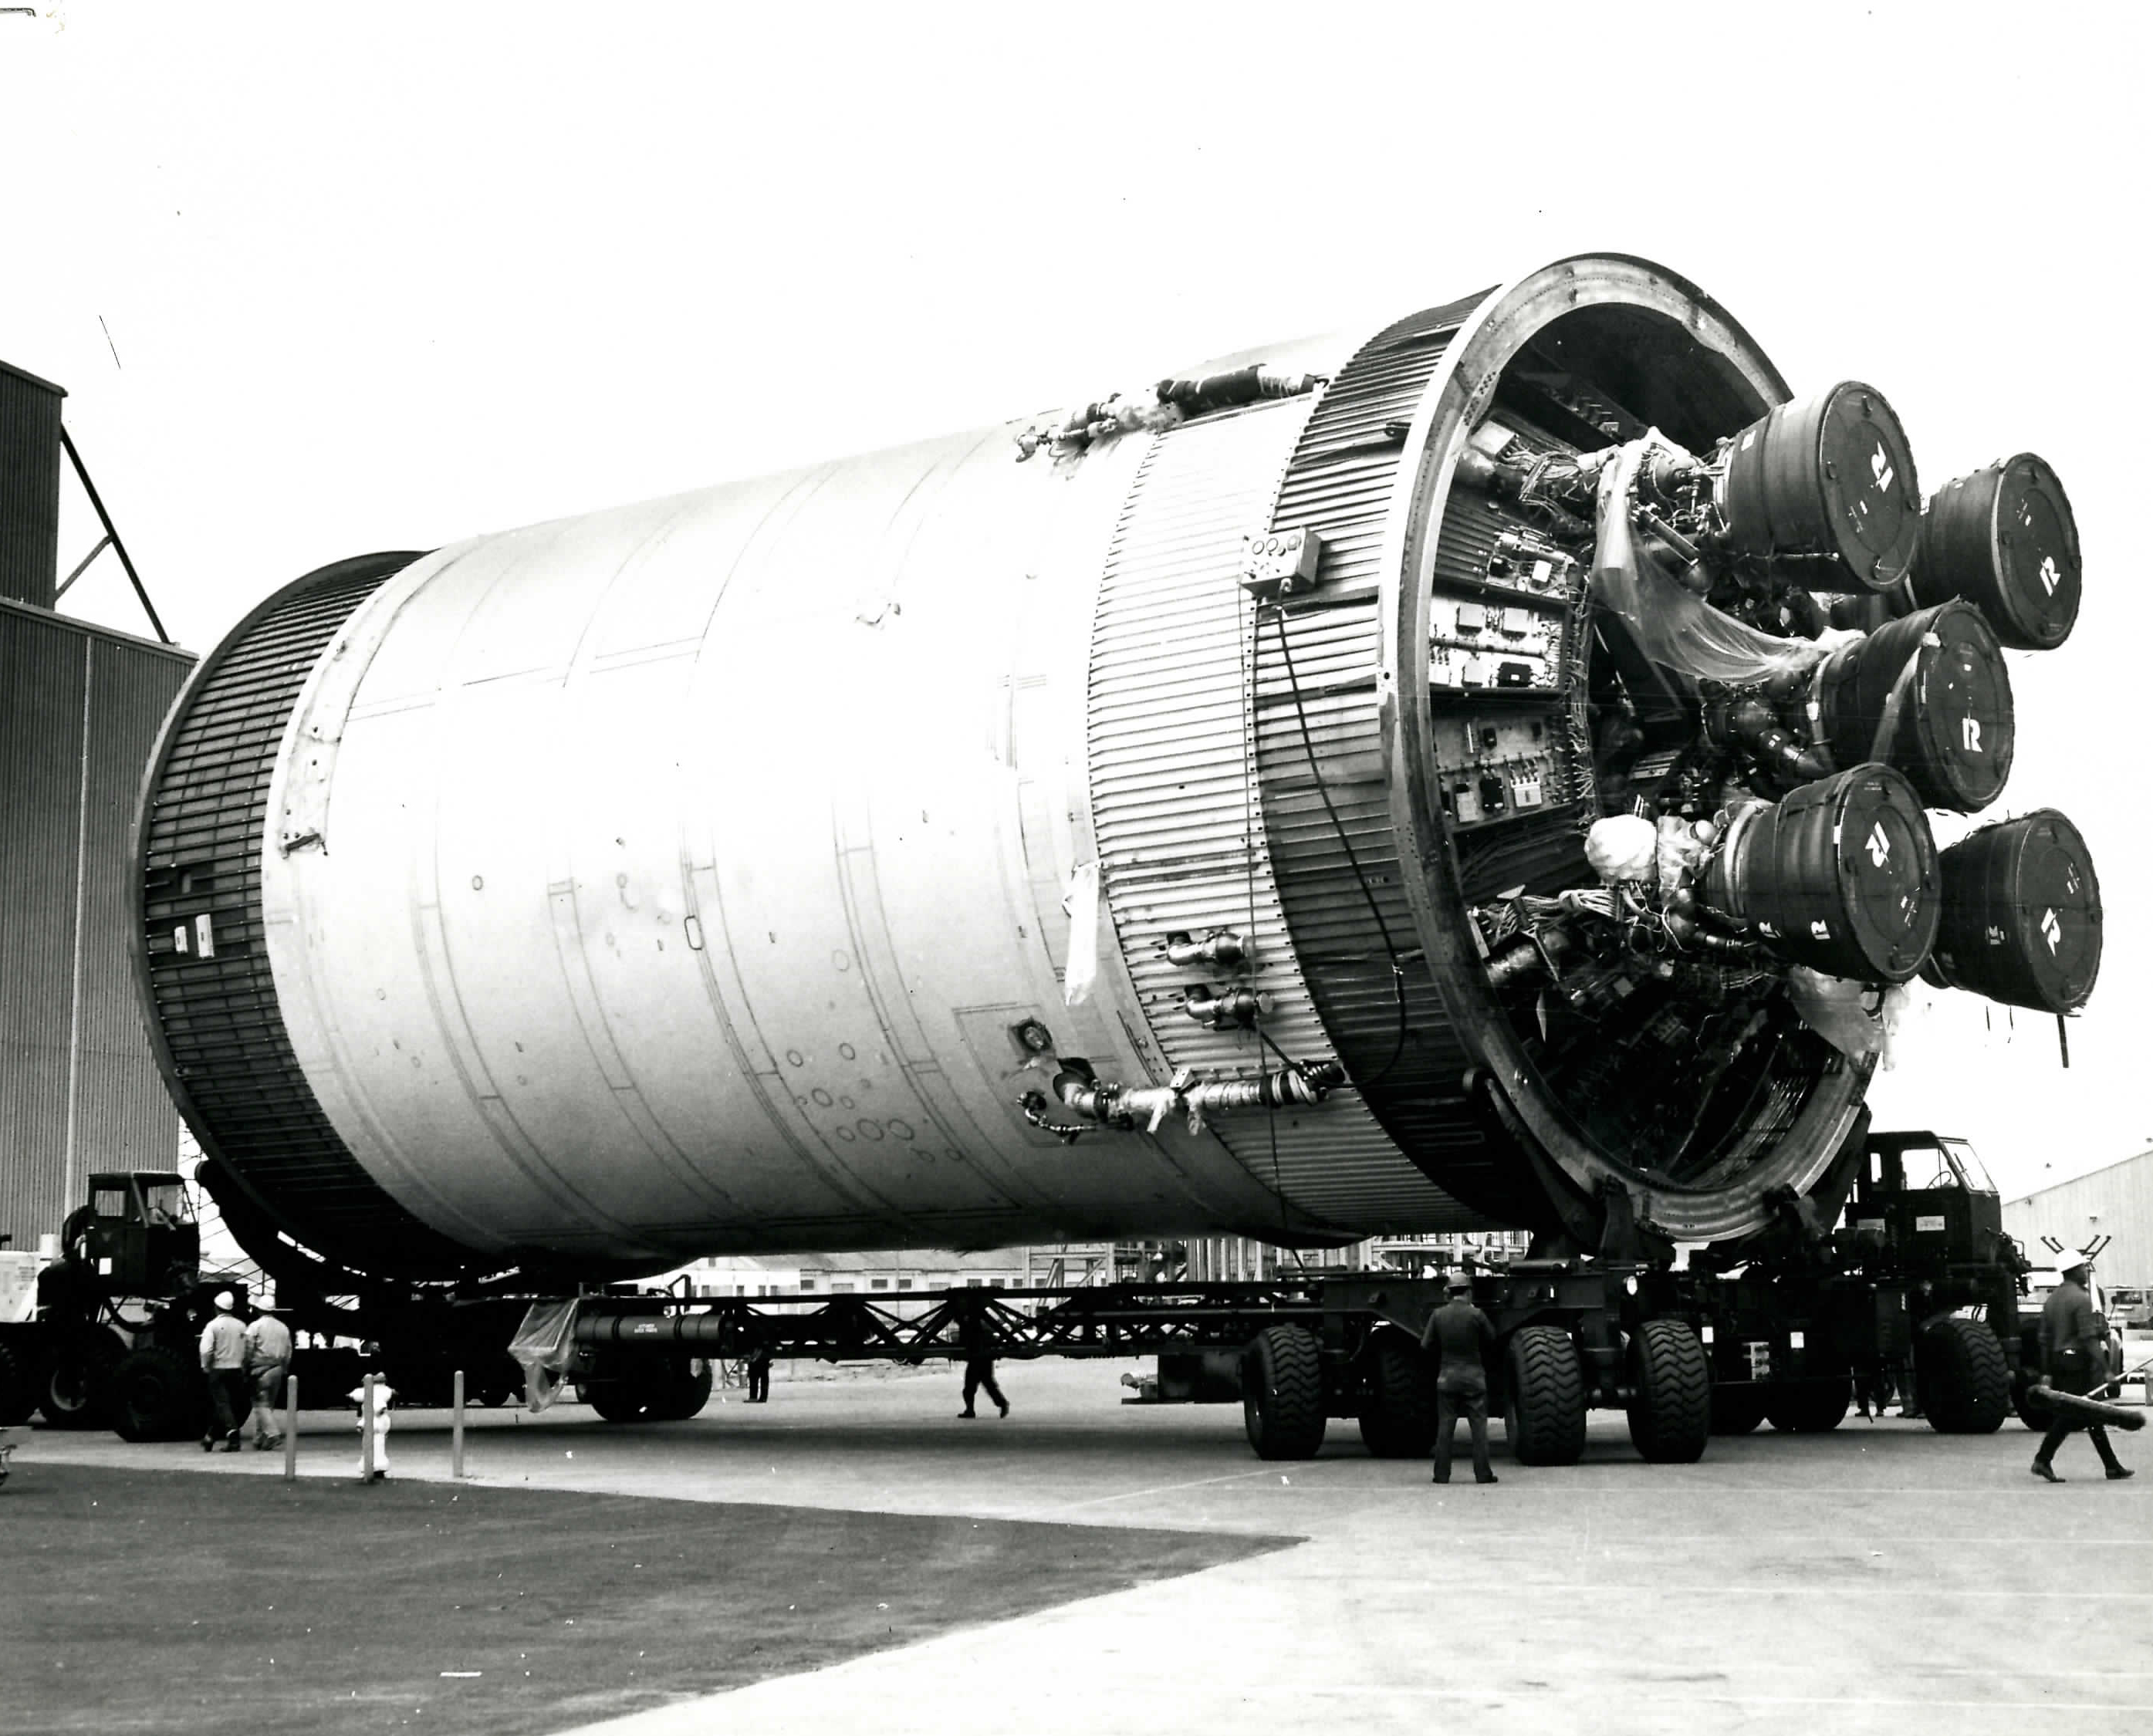 J-2 Apollo Engine – Five J-2 engines are installed on the second stage of the Saturn V vehicle. Combined, the engines produced more than 1 million pounds of thrust that took astronauts to the moon on the Apollo 11 mission.